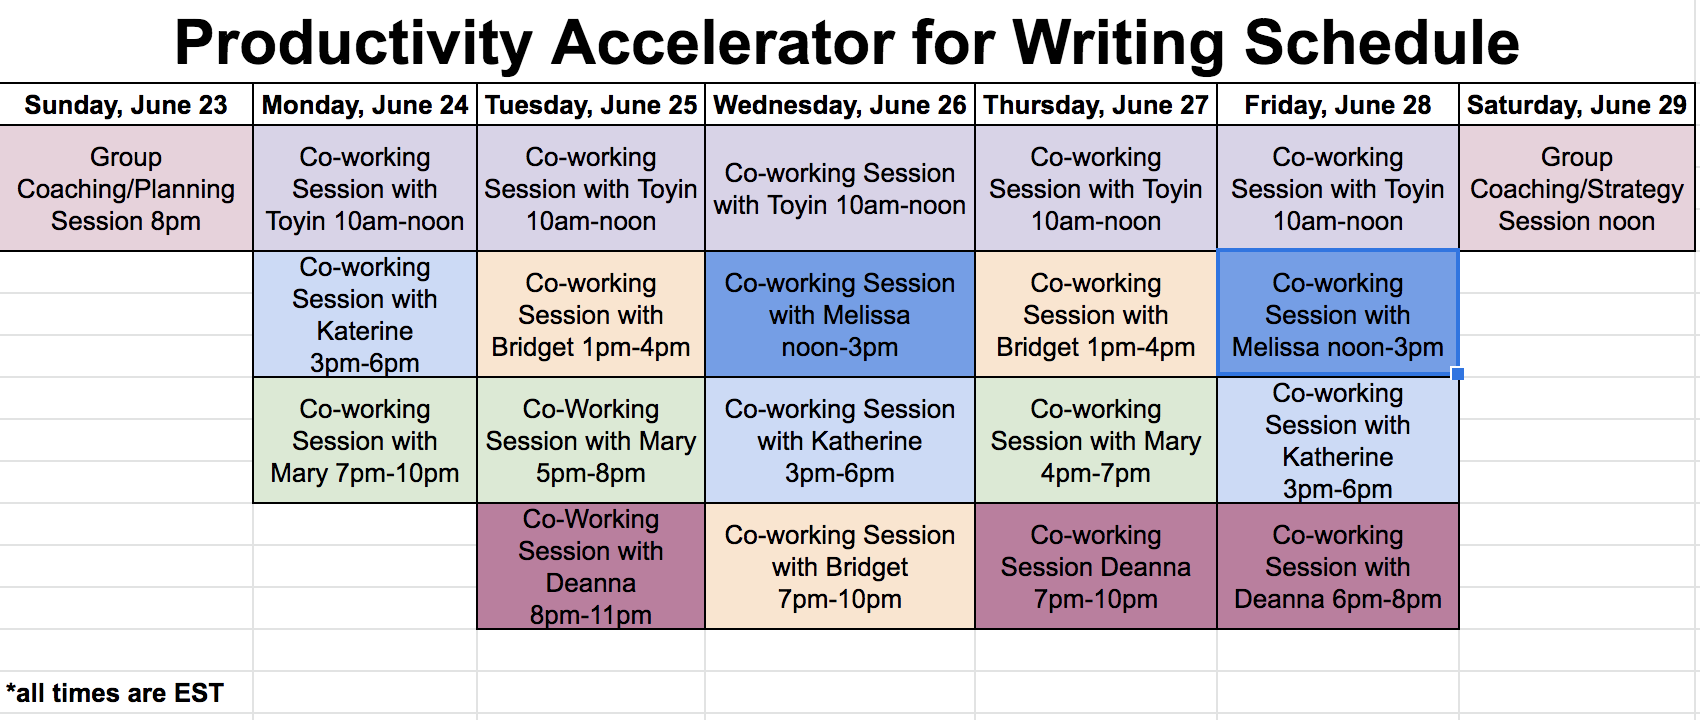 Productivity Accelerator Schedule The Academic Society.png